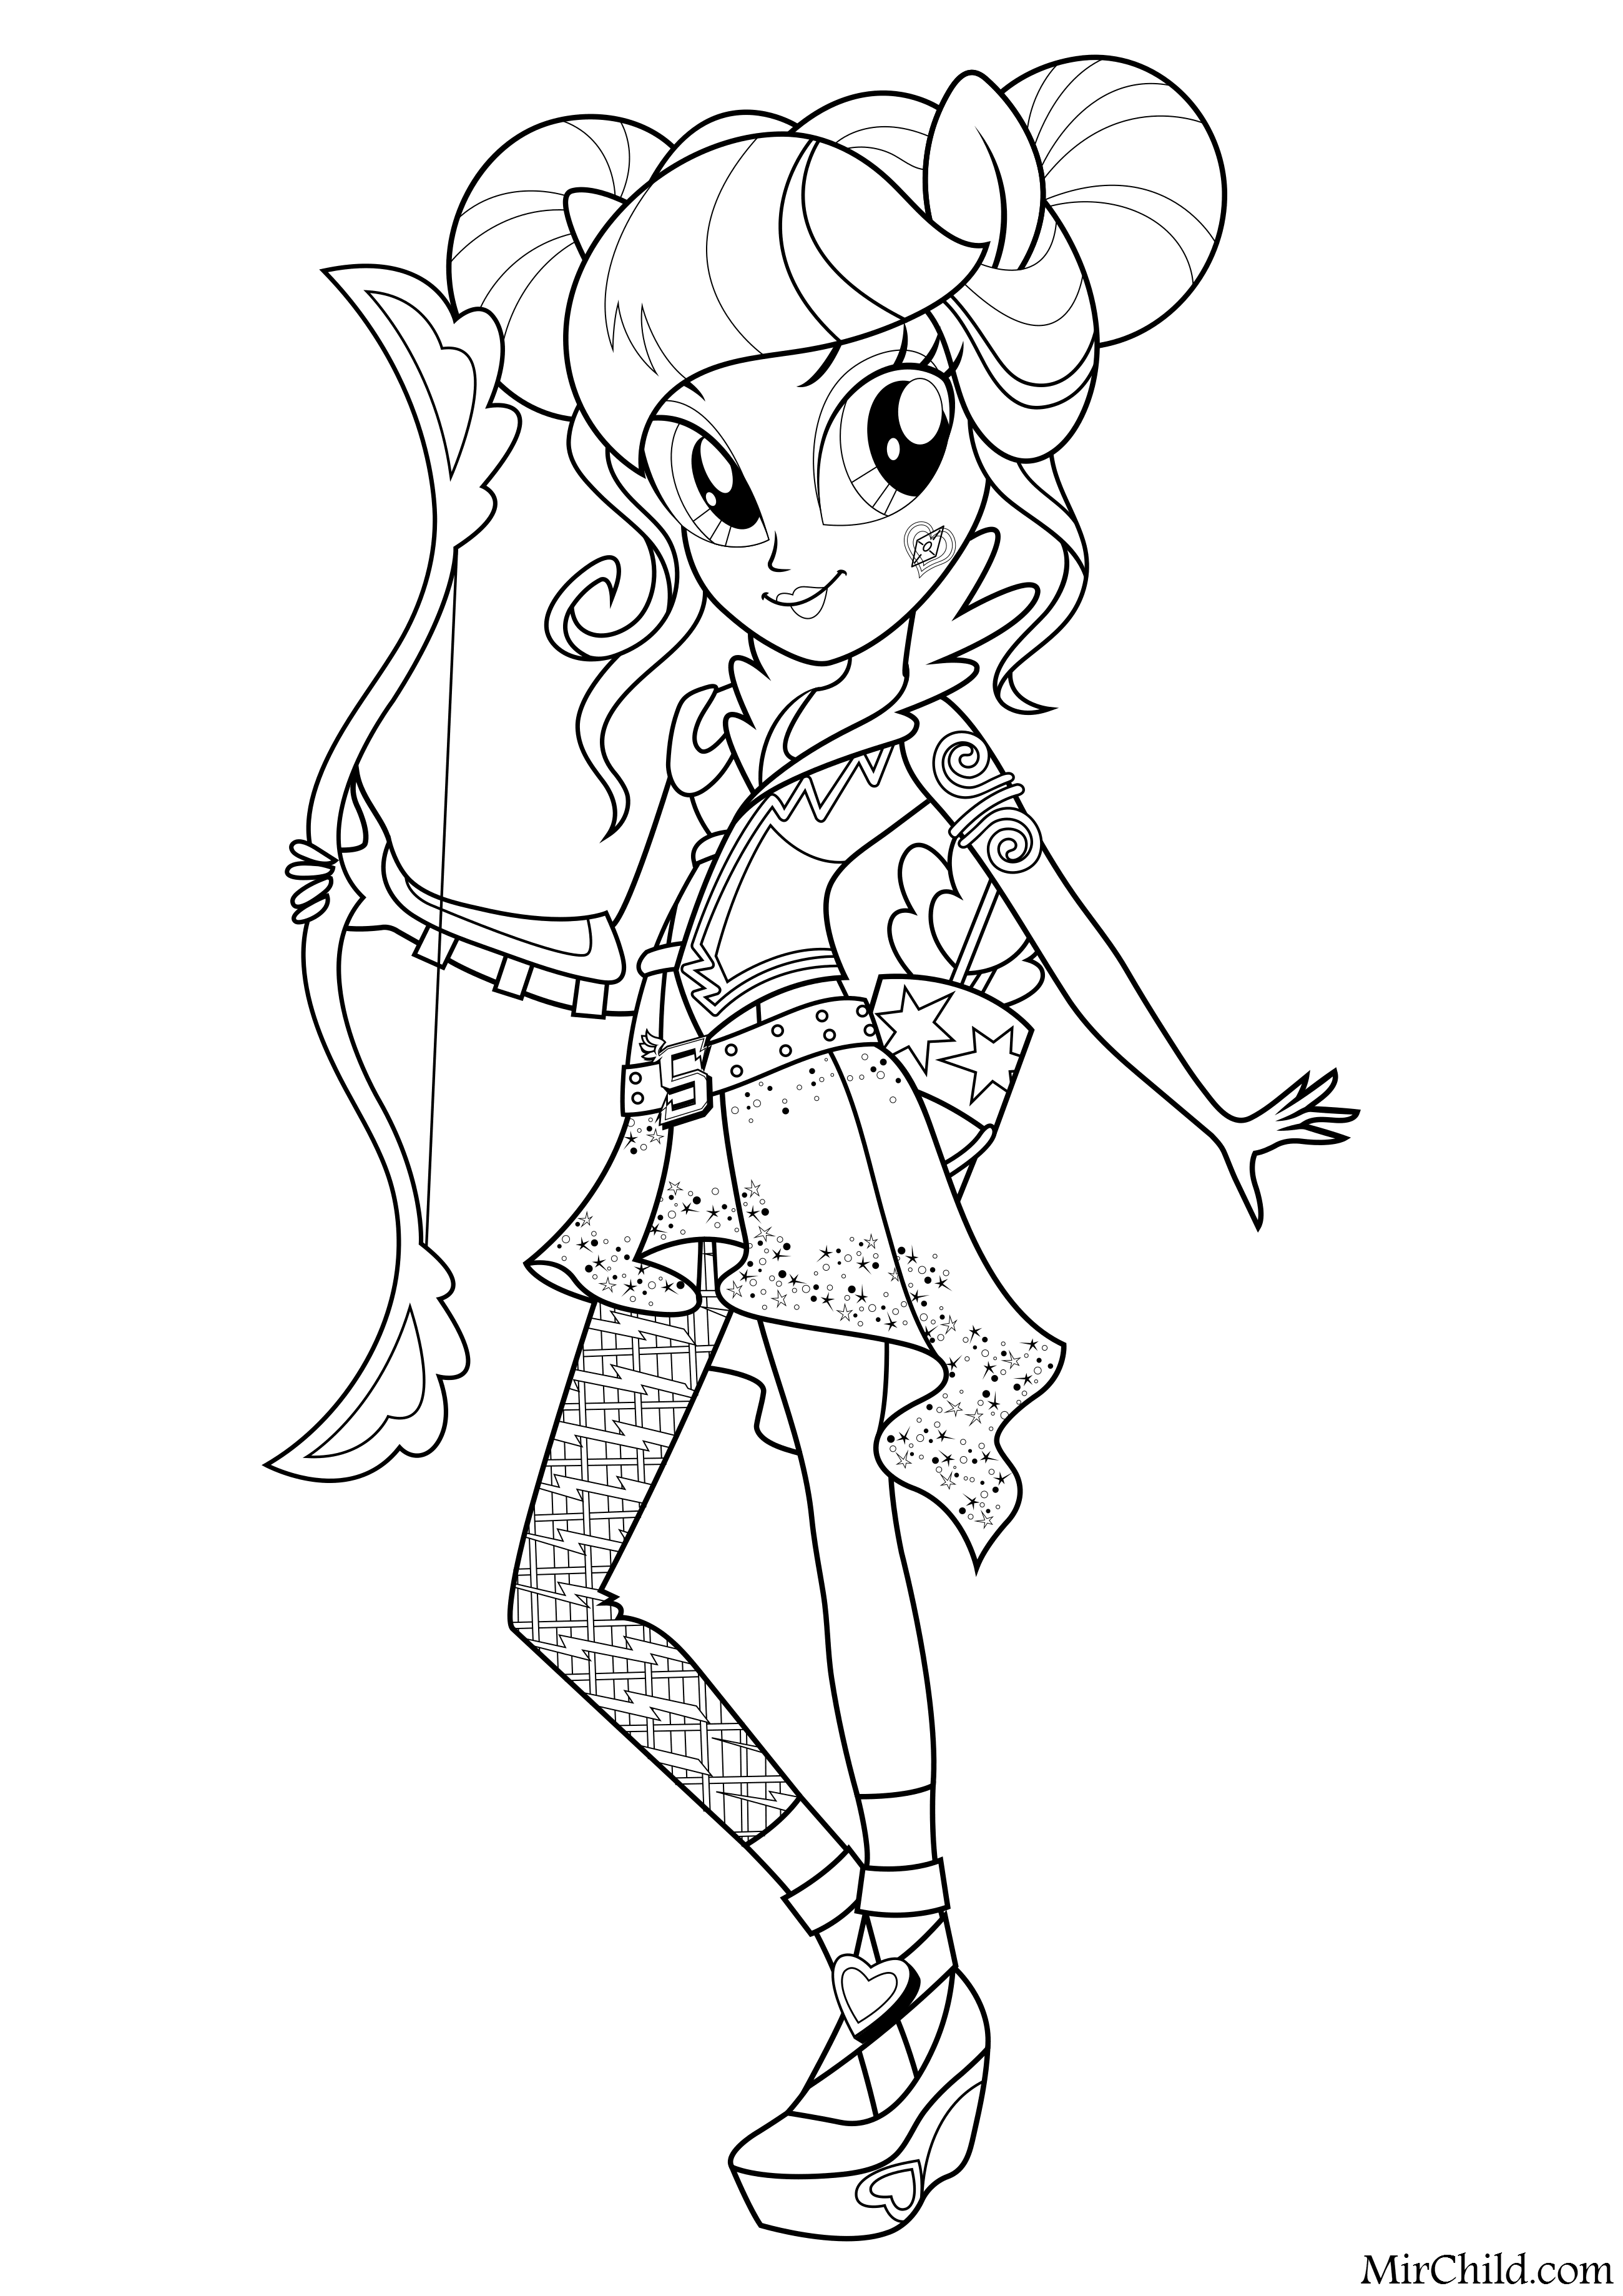 Pin By Mirka On Coloring Picture Disney Princess Coloring Pages My Little Pony Coloring Cute Coloring Pages